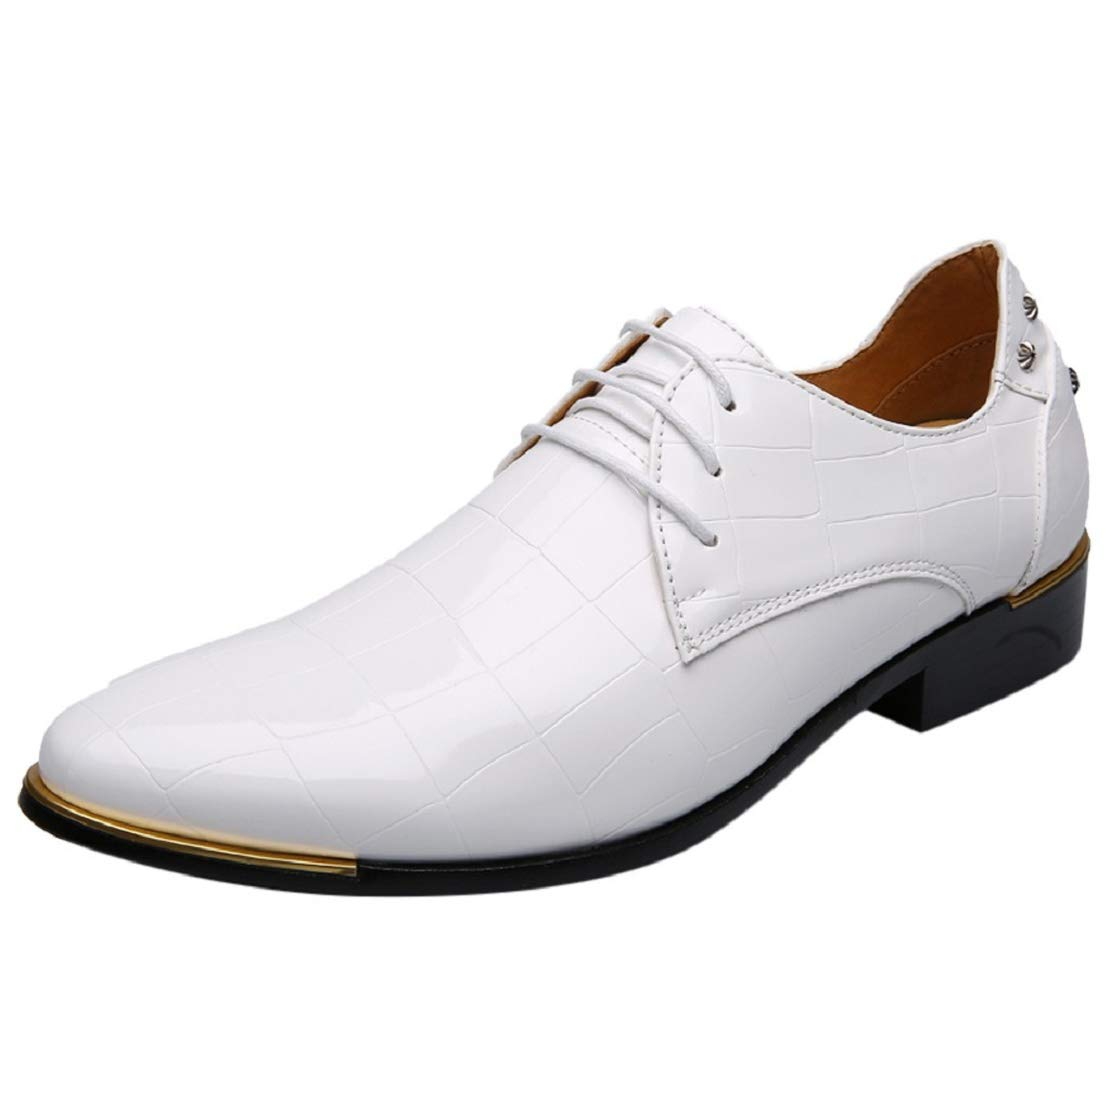 Men Patent Leather Lace up Wingtip Dress Shoes Pointed Toe Oxford Dress Tuxedo Shoes by Lowprofile White